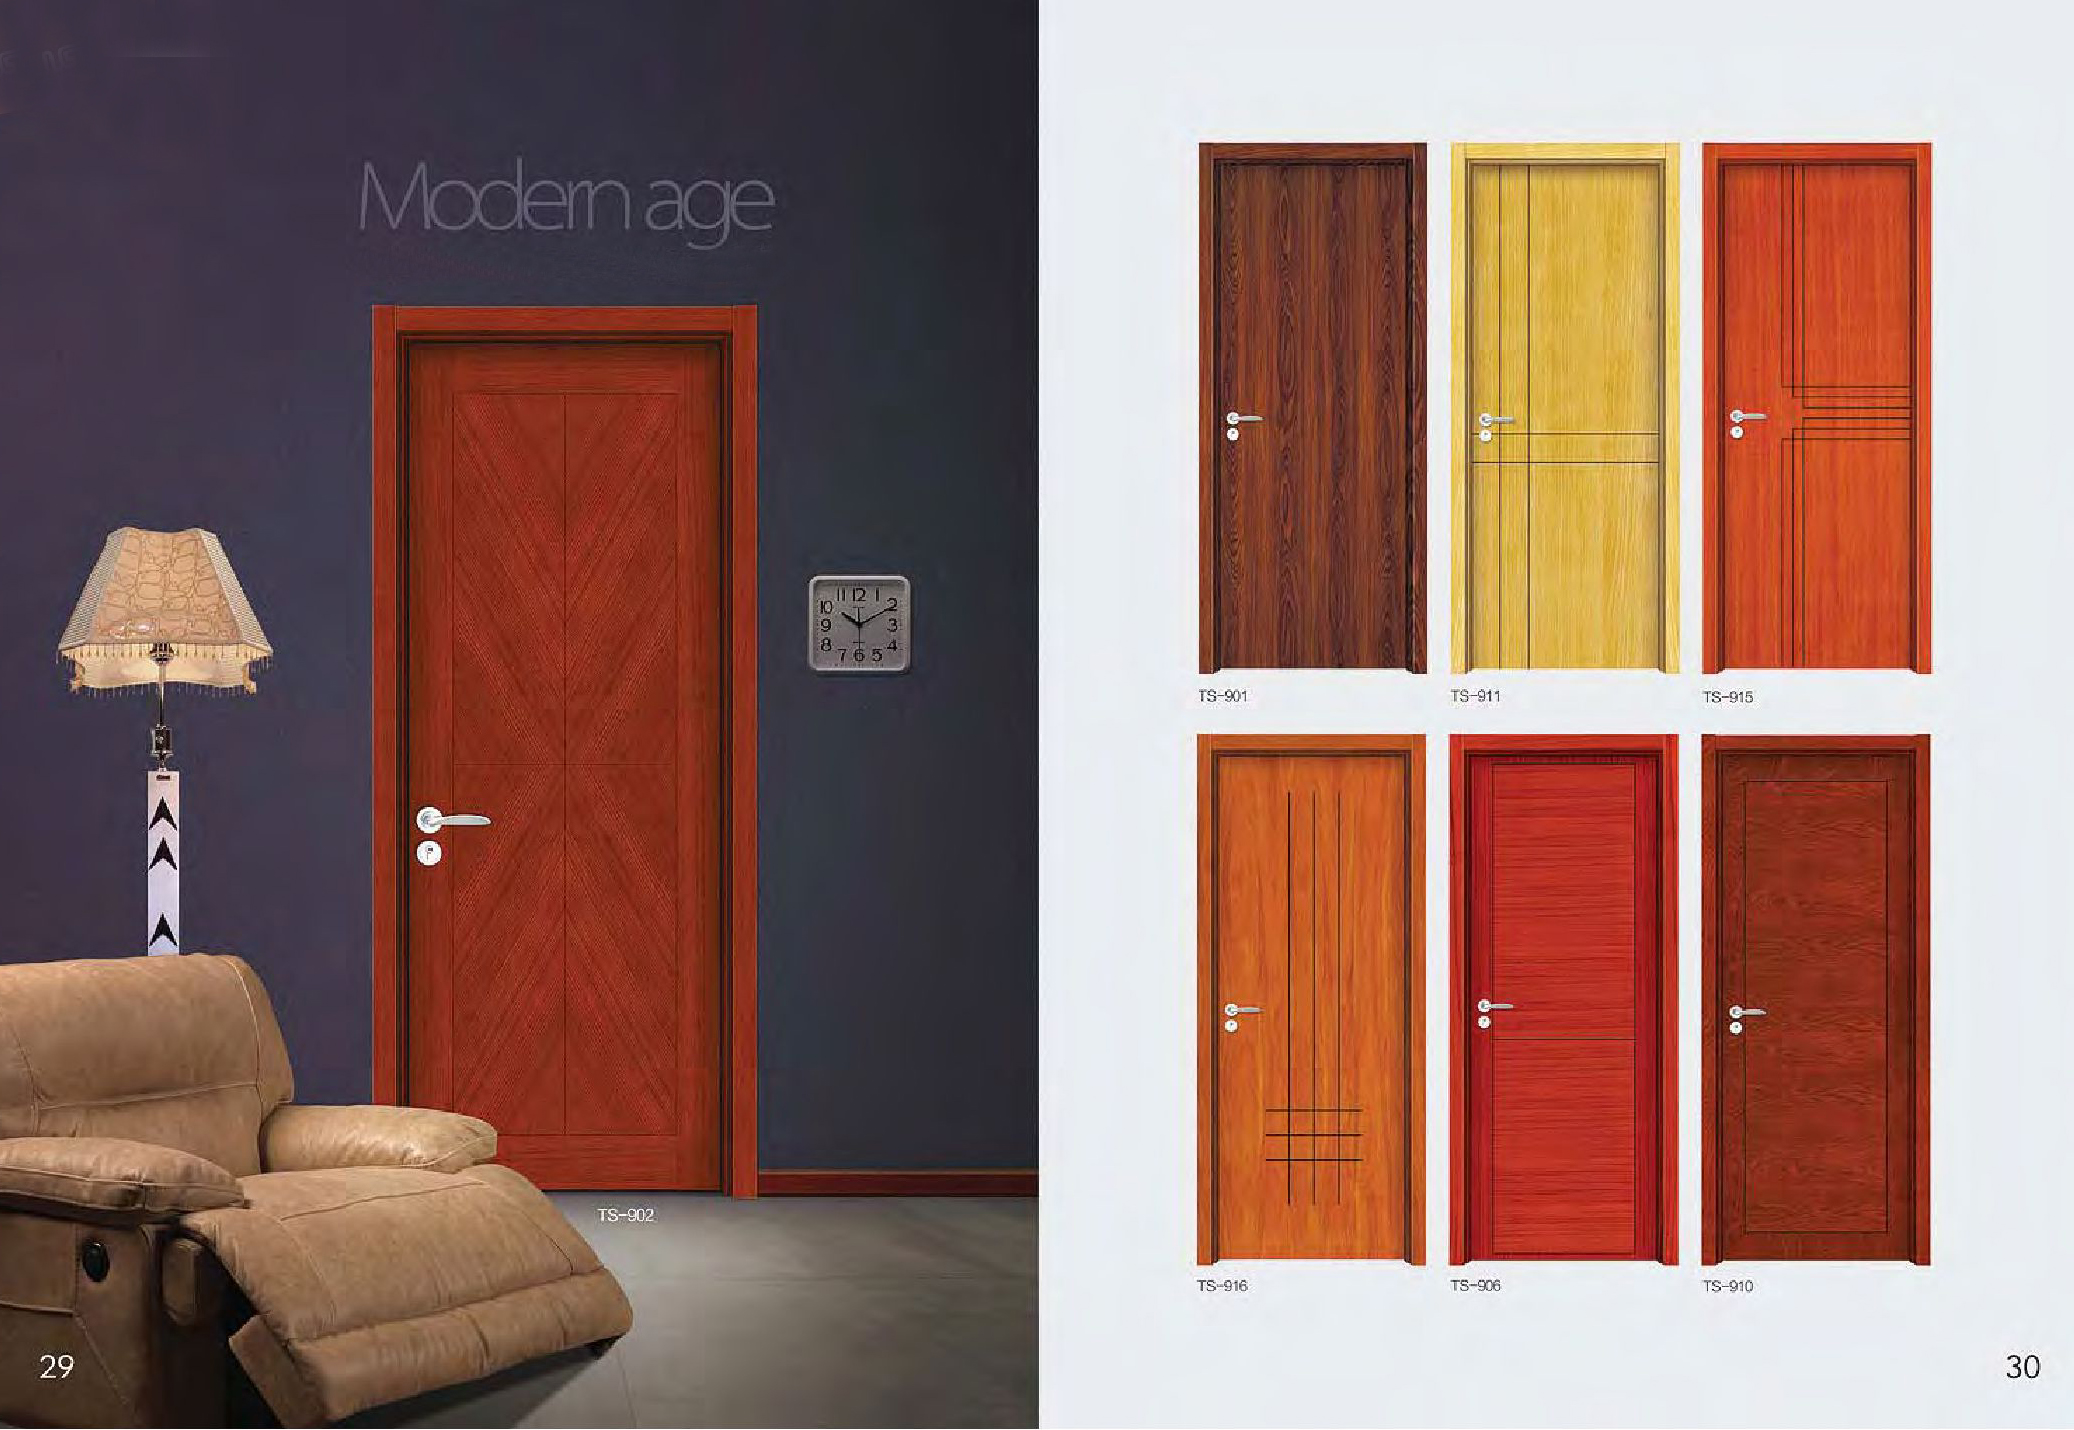 Captivating Paints For Wooden Doors Gallery - Exterior ideas 3D ...